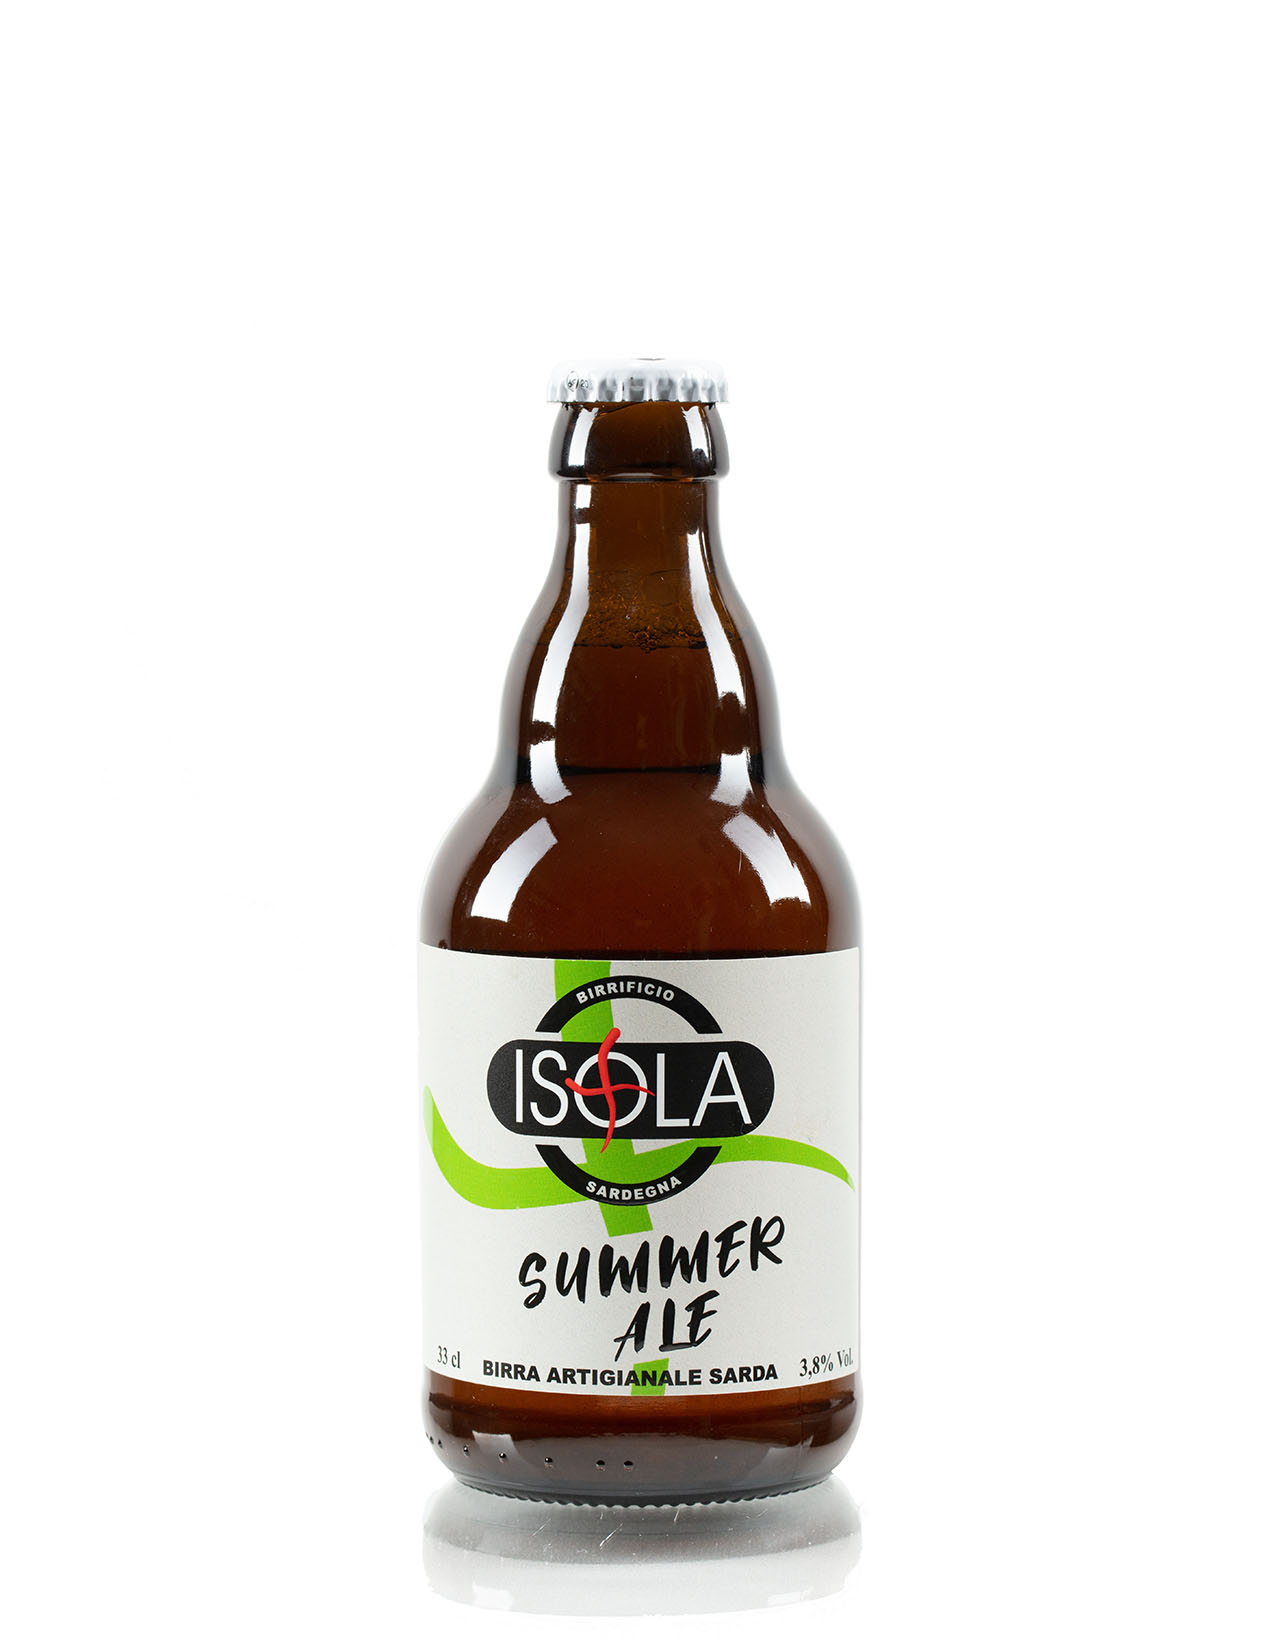 ISOLA SUMMER ALE